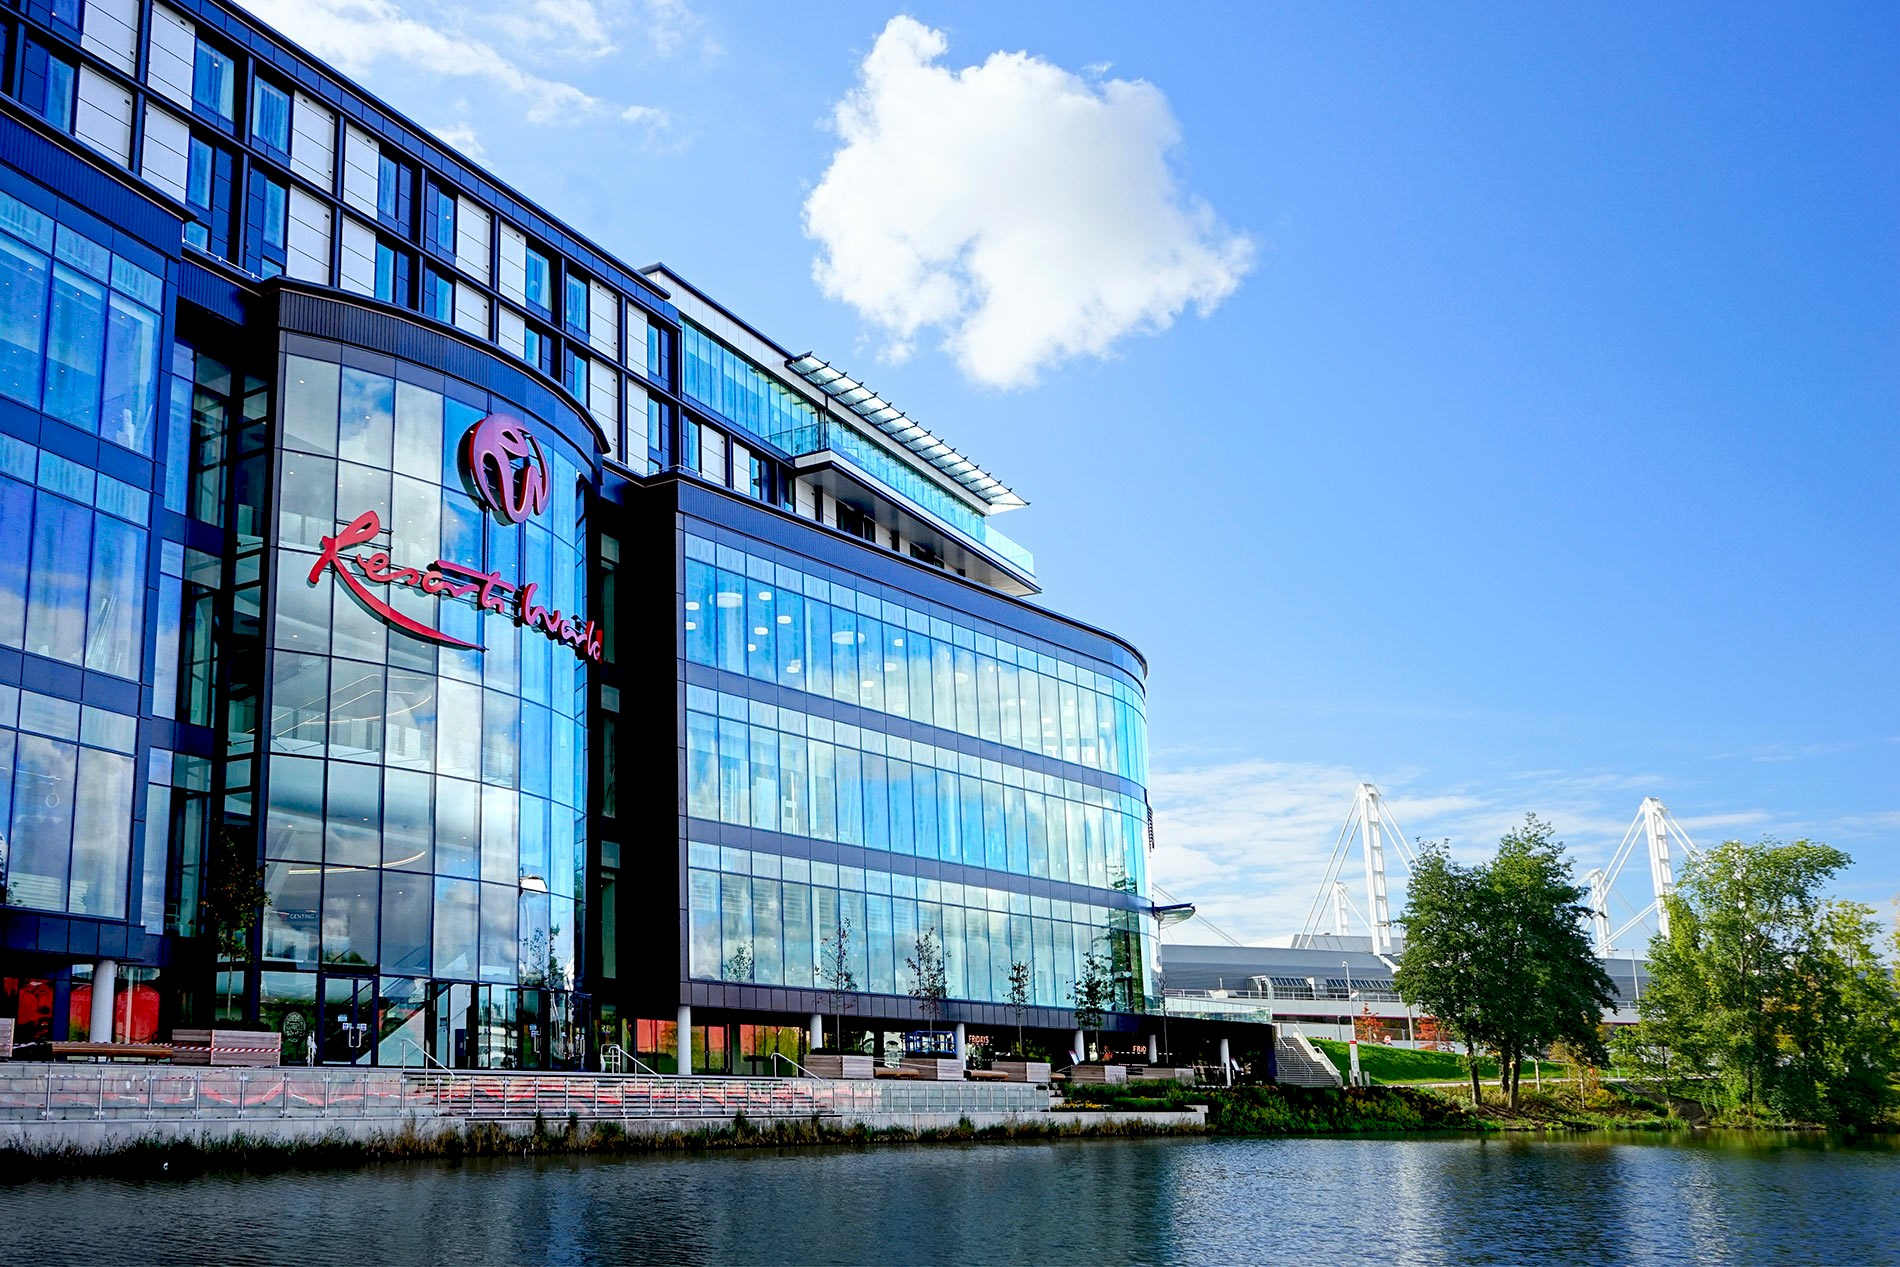 Genting Opens First European Resorts World, Designed by Benoy